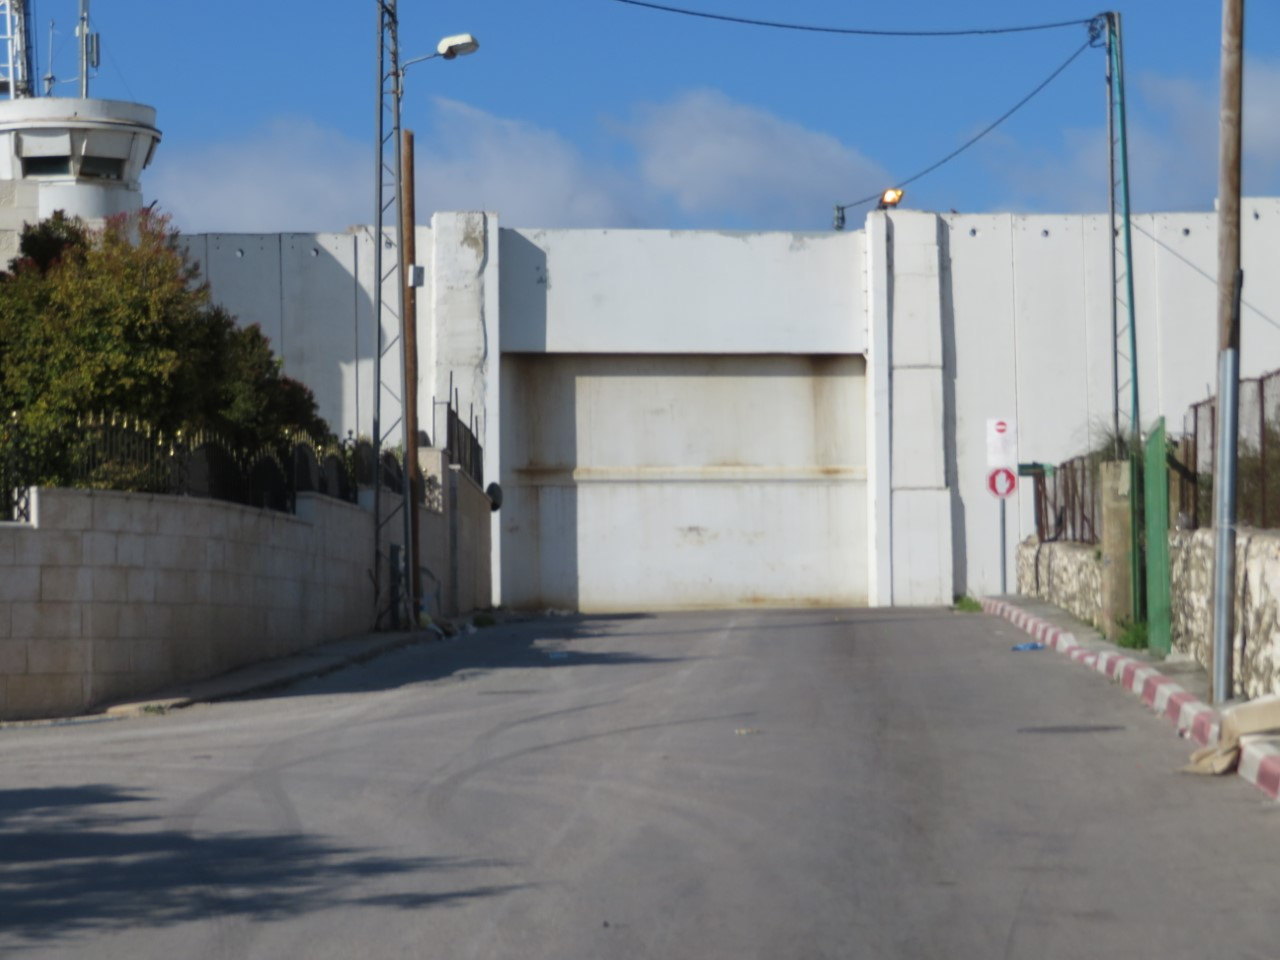 The main entrance and exit from Bethlehem, sealed shut by Israel.